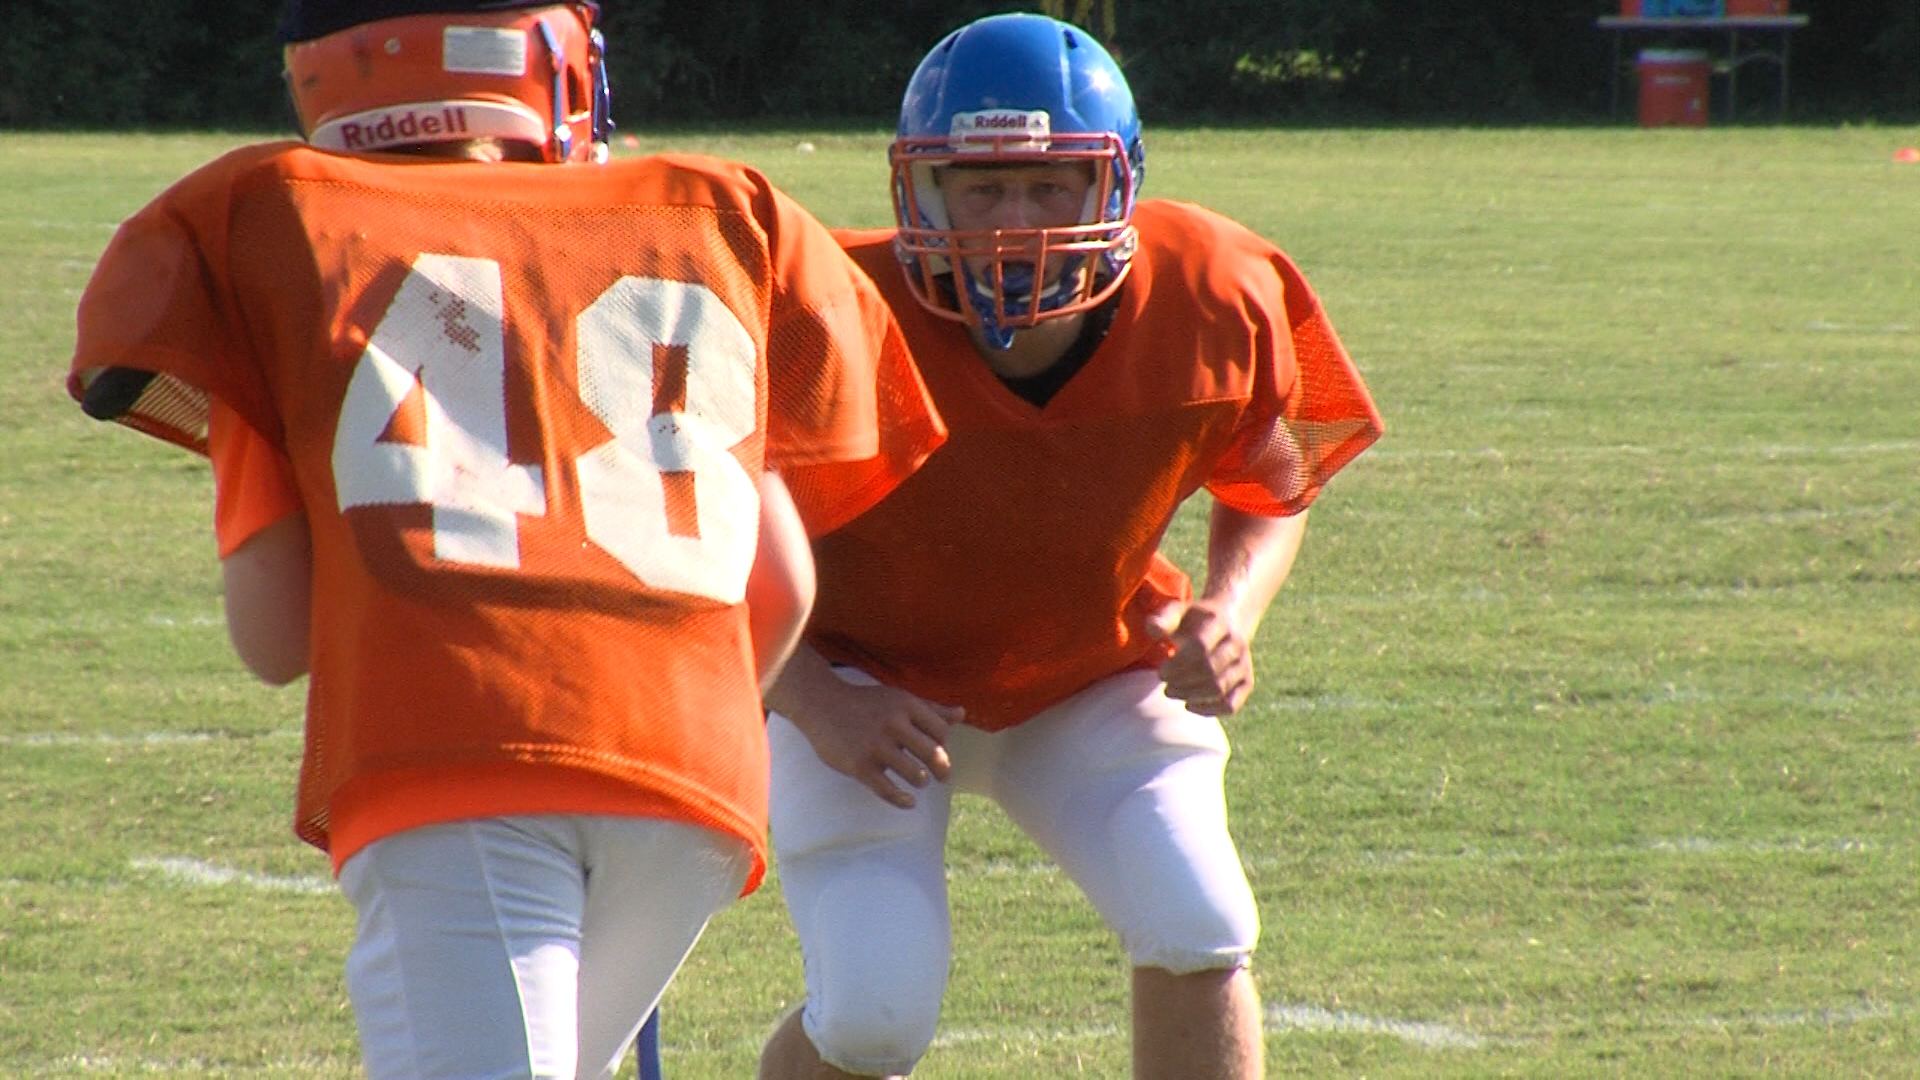 Delmar Plans To Rely On Impact Two-Way Players